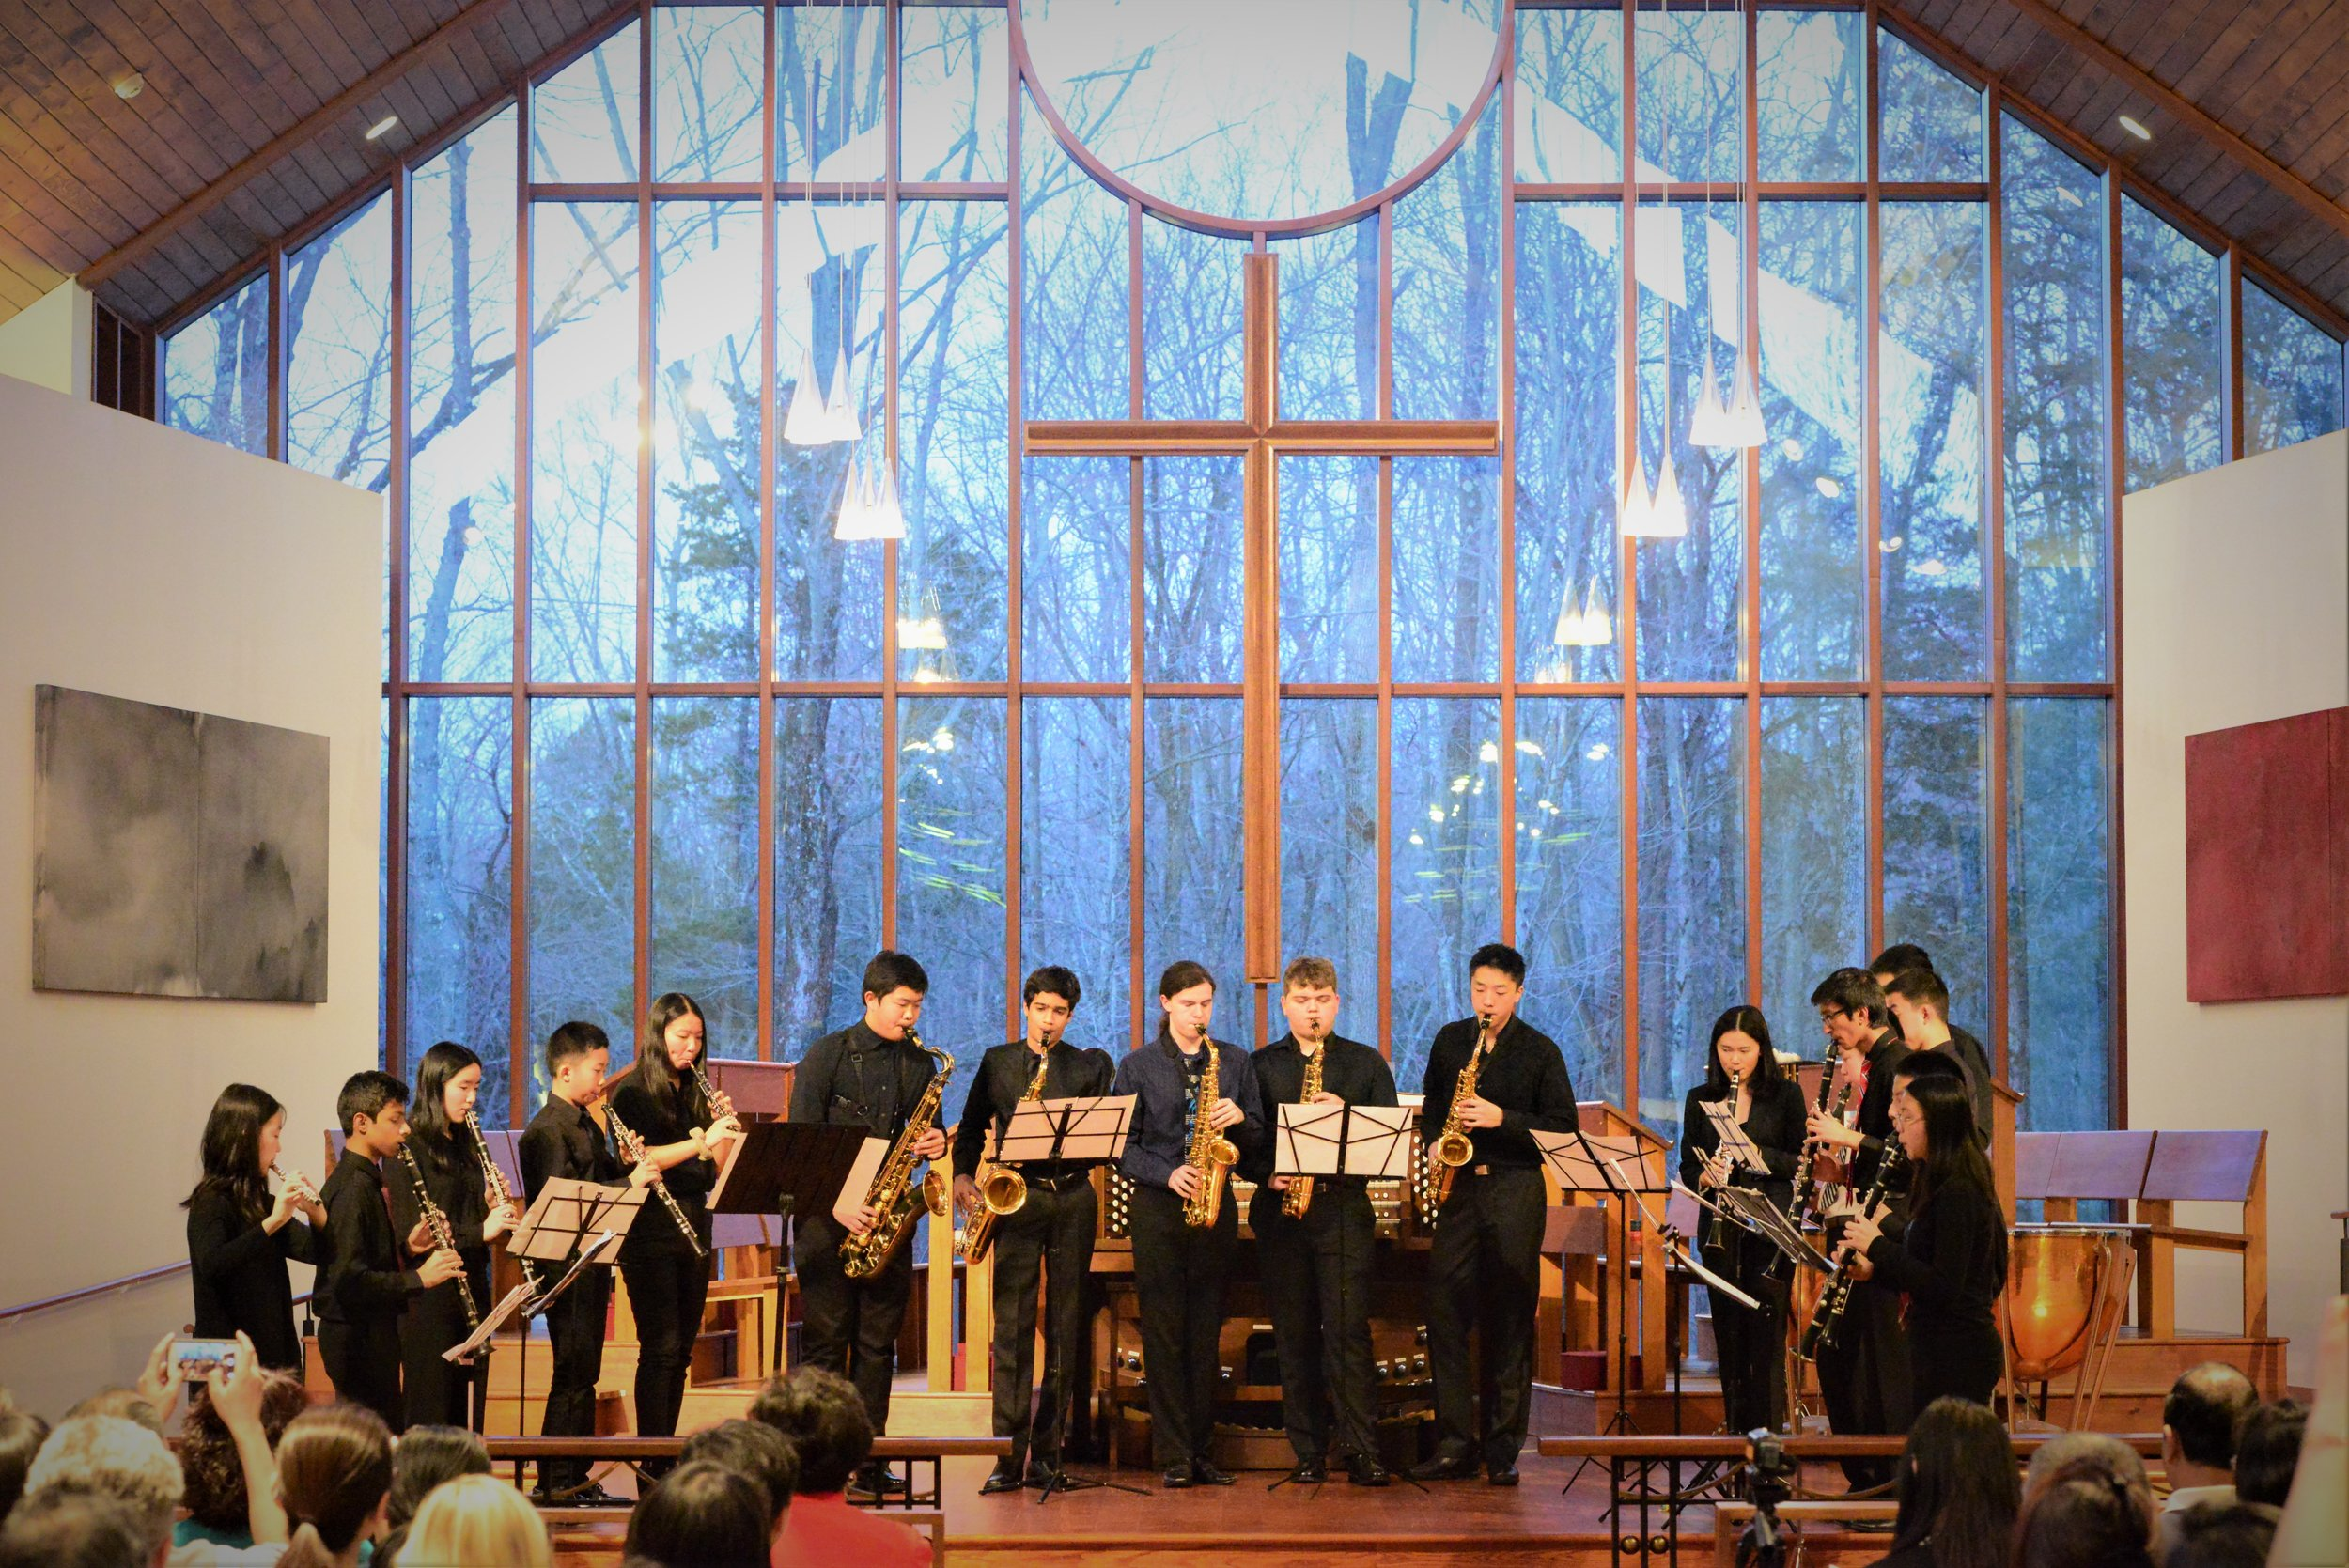 Wind Ensemble performing the Suite for Winds, No. 2 by Charles Lefebvre